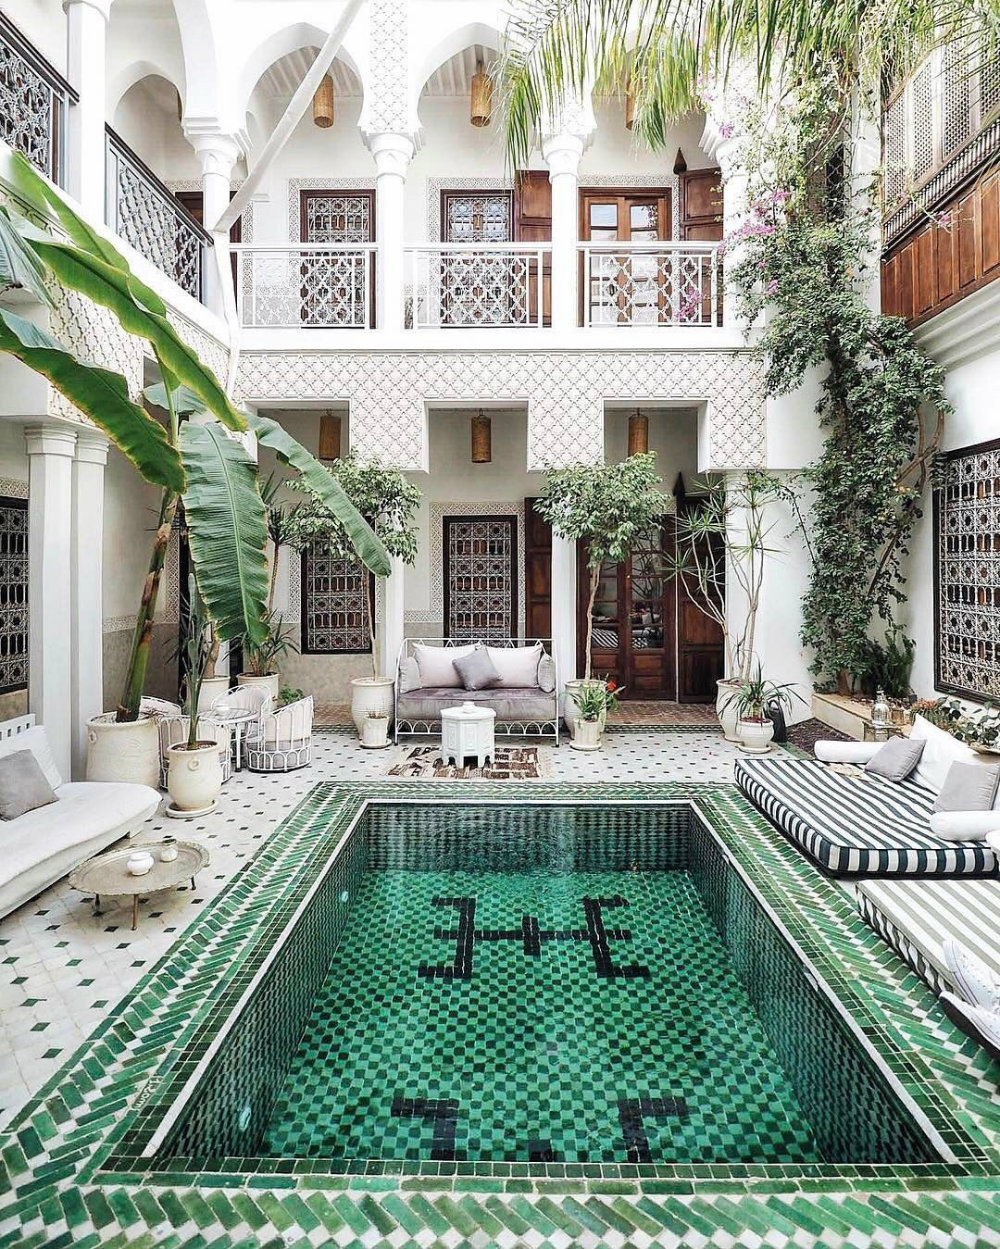 The Best Riads In Marrakesh To Stay In 03 the best riads in marrakesh The Best Riads In Marrakesh To Stay In The Best Riads In Marrakesh To Stay In 03